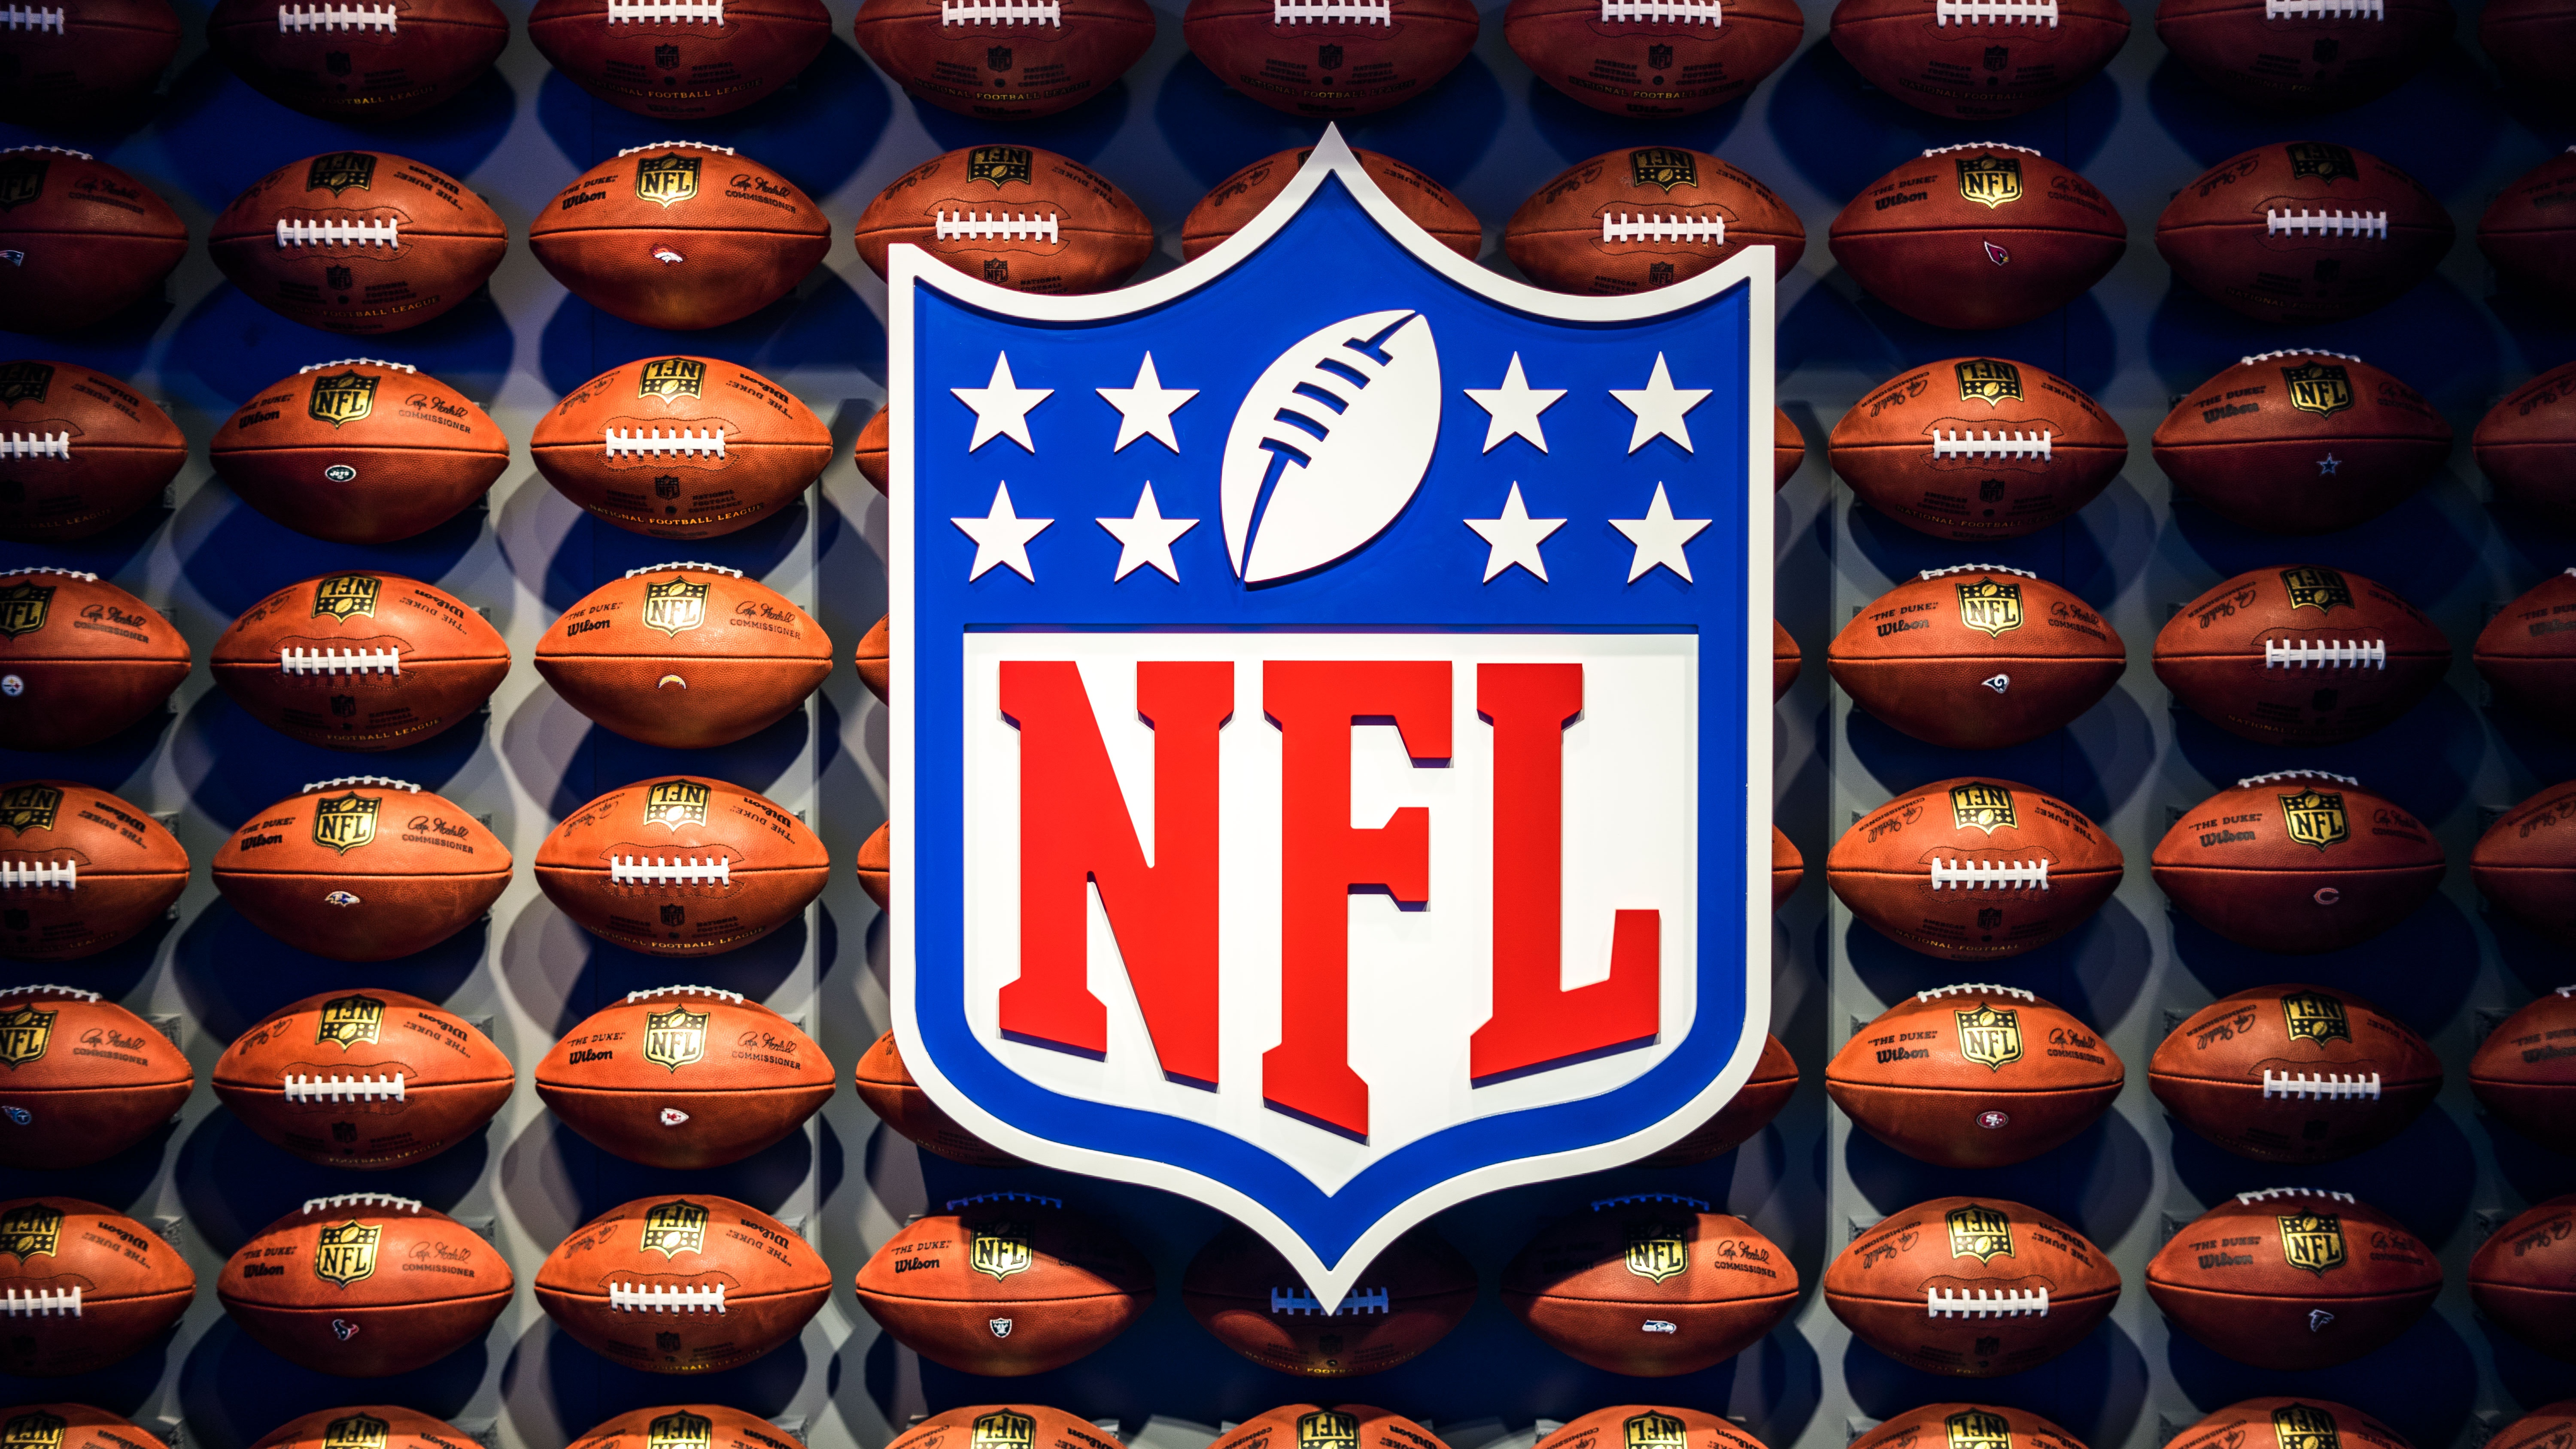 NFL logo in front of a wall of footballs